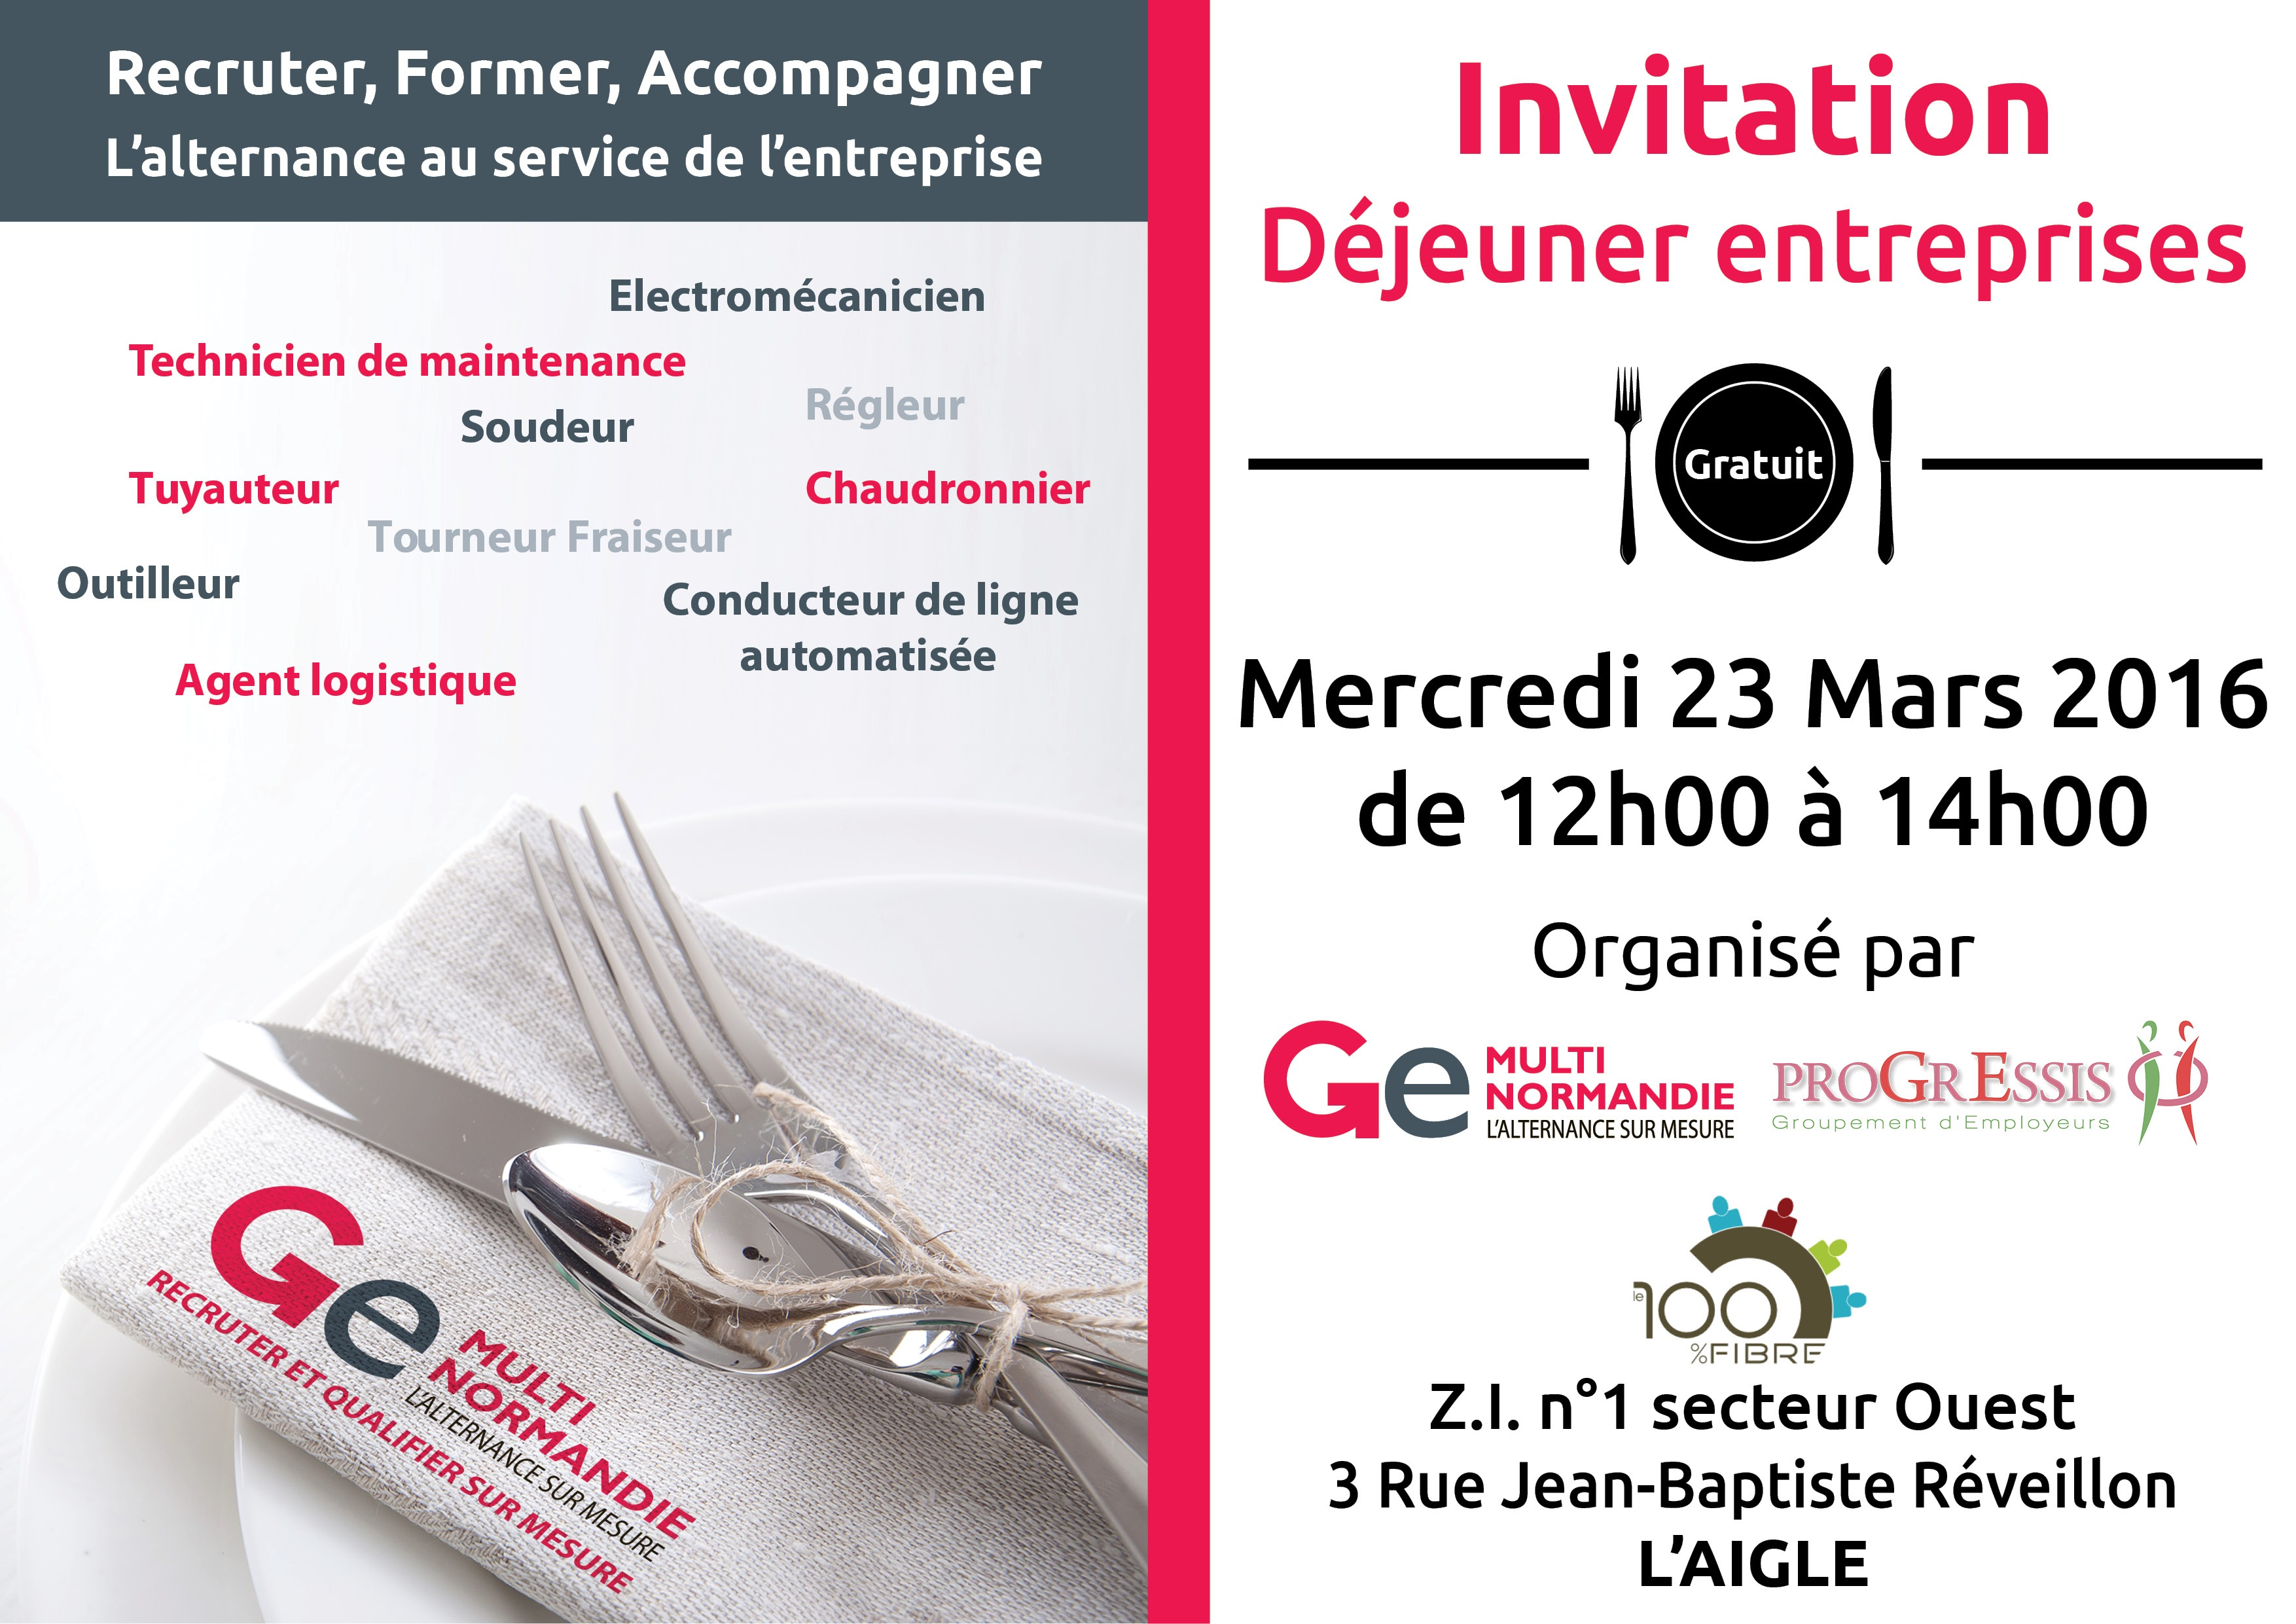 Invitation_GE multi normandie_dejeuner 23 mars